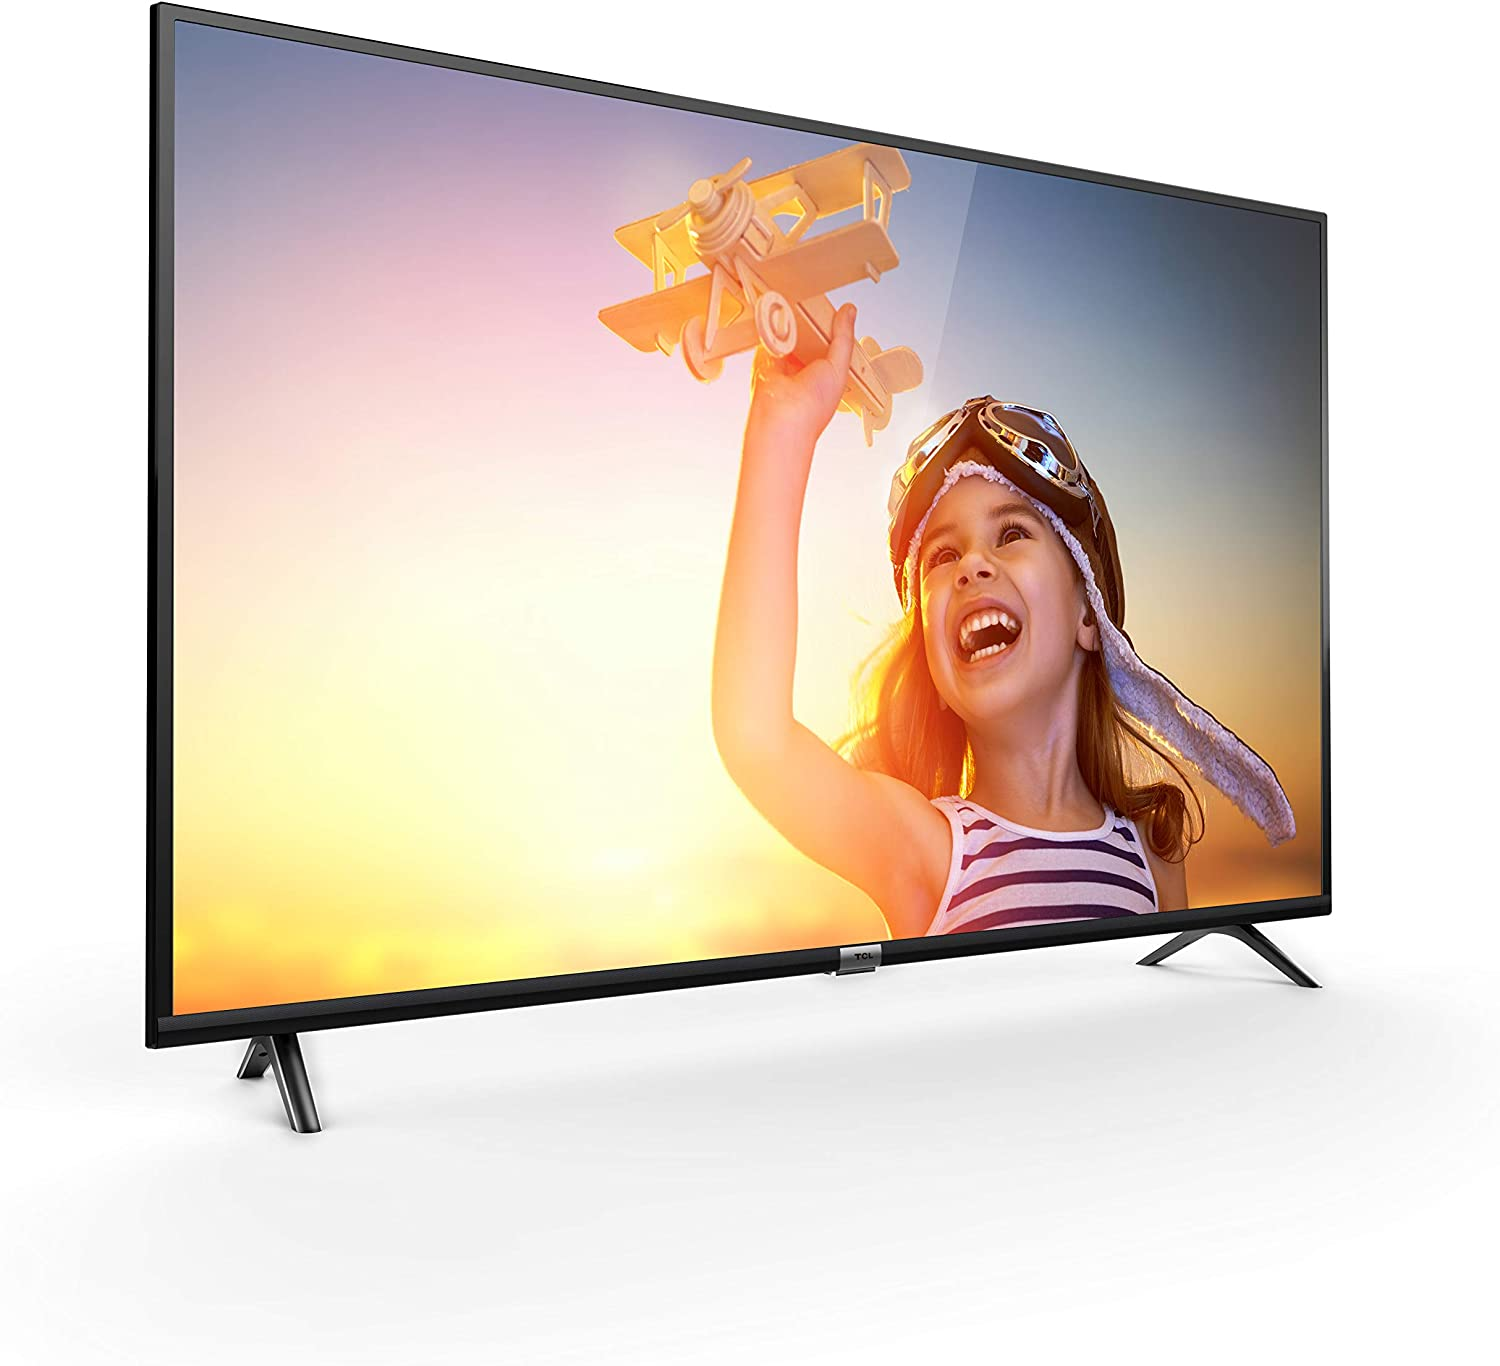 TCL 50DP602 Televisor de 50 pulgadas, Smart TV con UHD 4K, HDR, Dolby Digital Plus, T-Cast y sintonizador Triple, Color Negro: Amazon.es: Electrónica